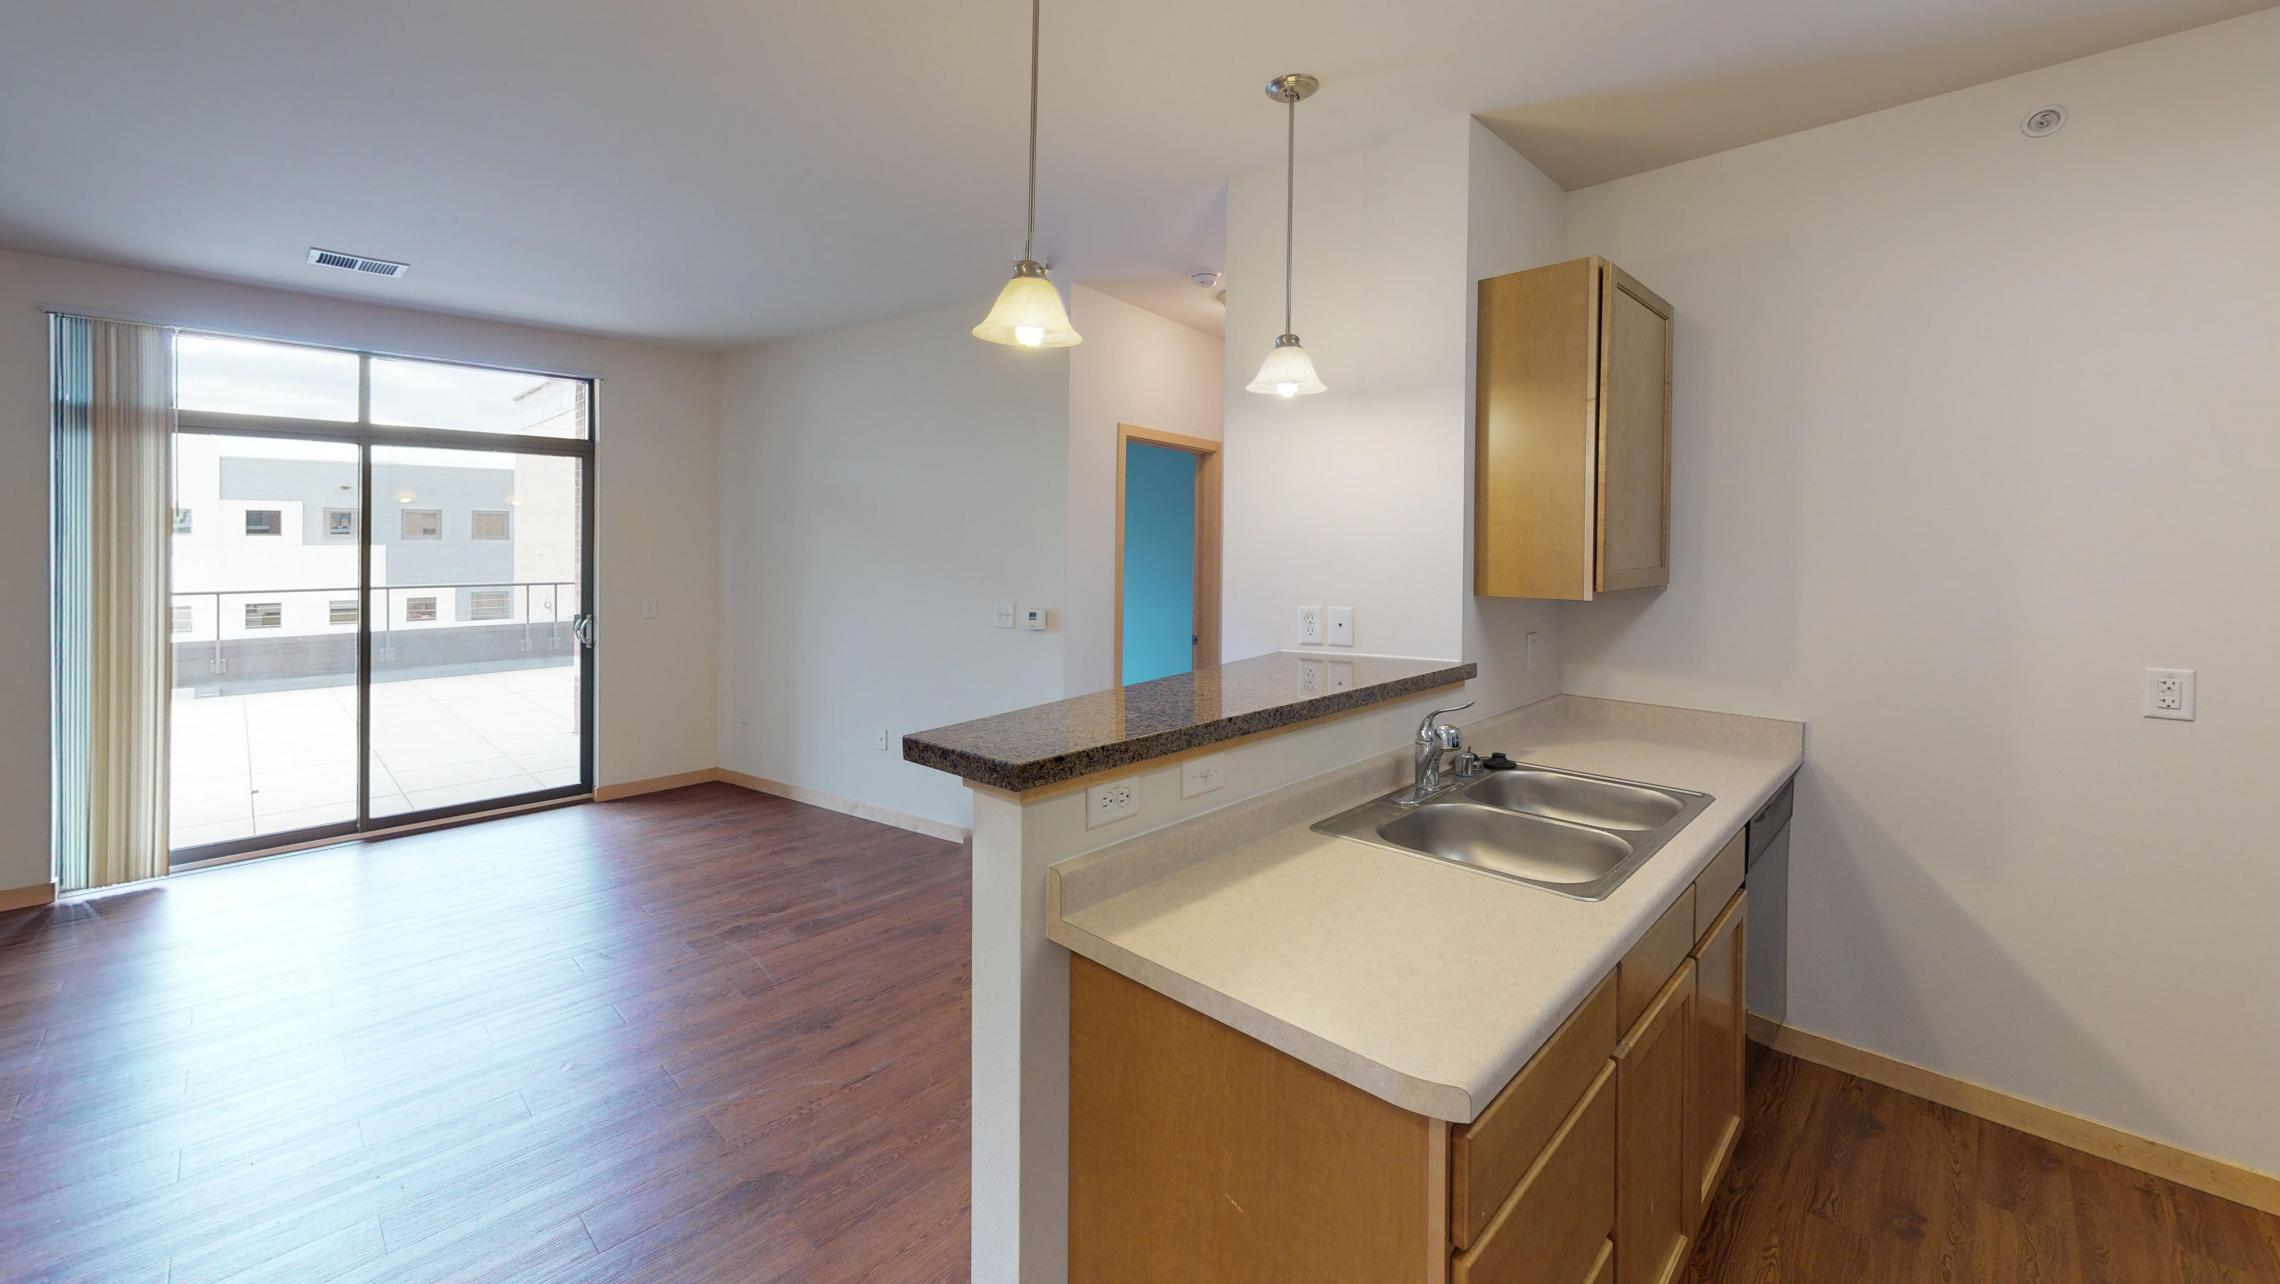 The-Depot-Apartments-Downtown-Madison-Lifestyle-Large-Closet-Bike-Storage-Washington-Ave-Style-Design-Balcony-Bike-Storage-Design-One-Two-Bedroom-Den